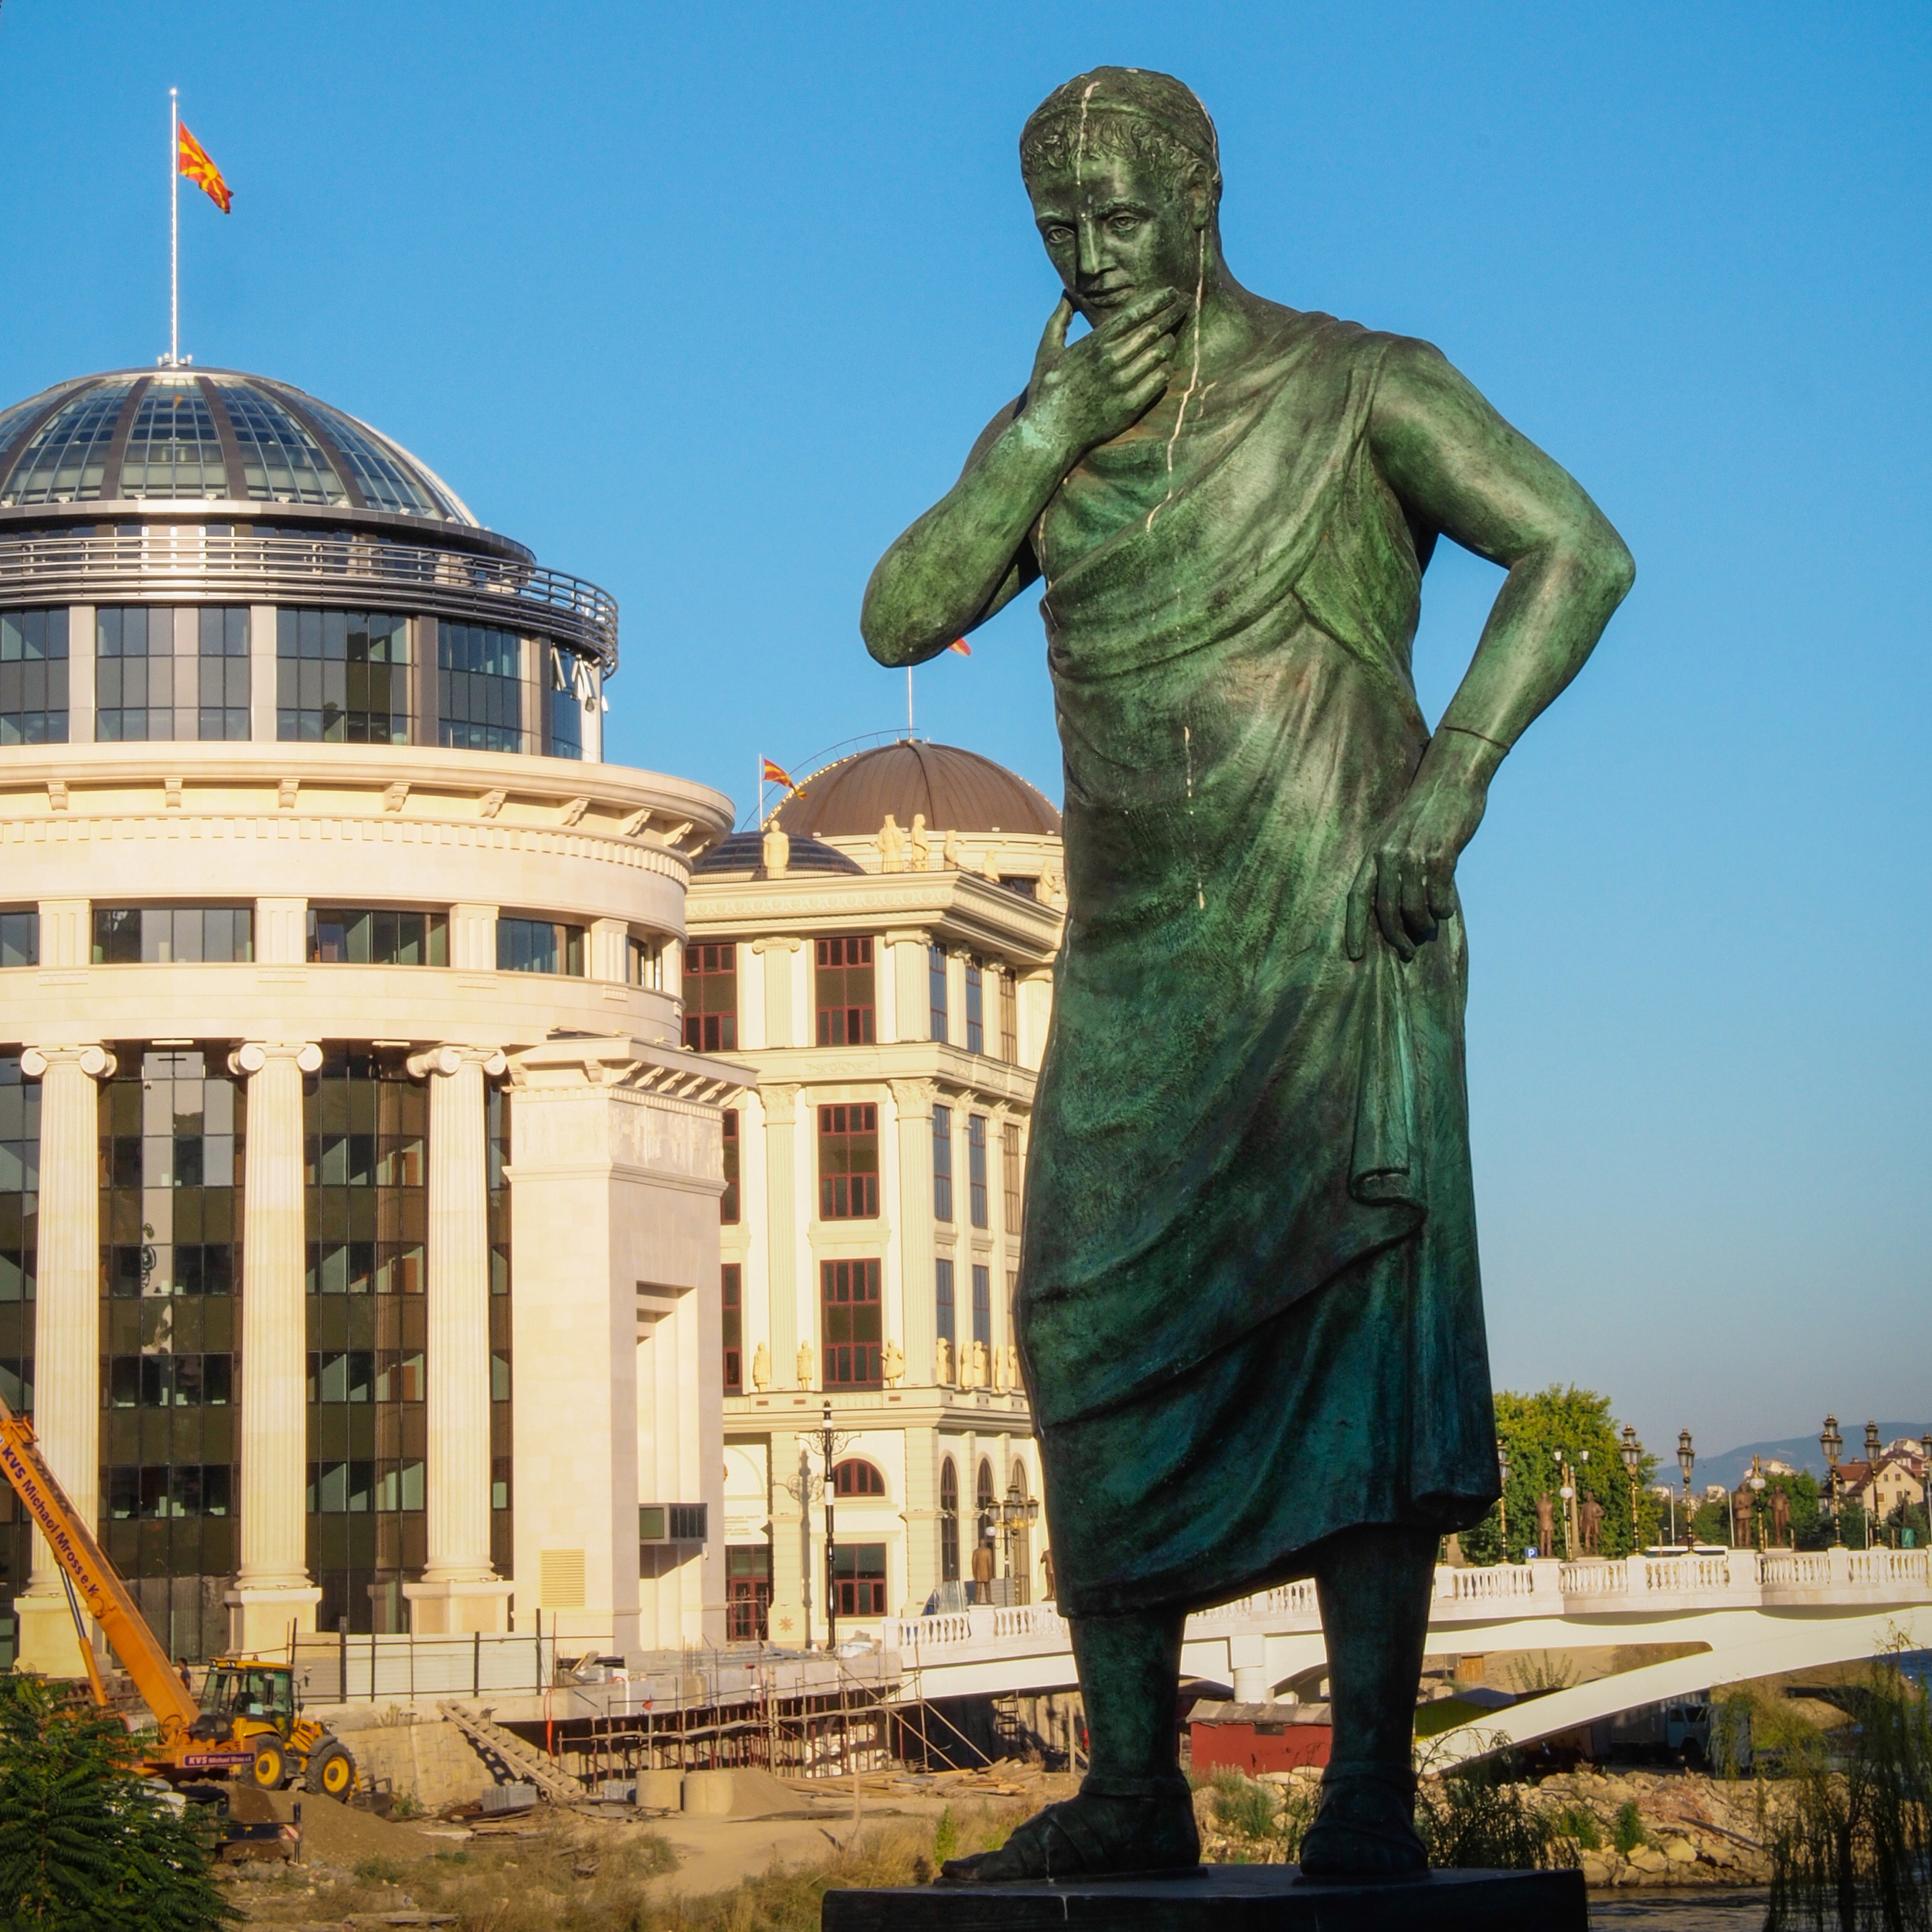 One of the numerous statues that dot the landscape of Skopje.